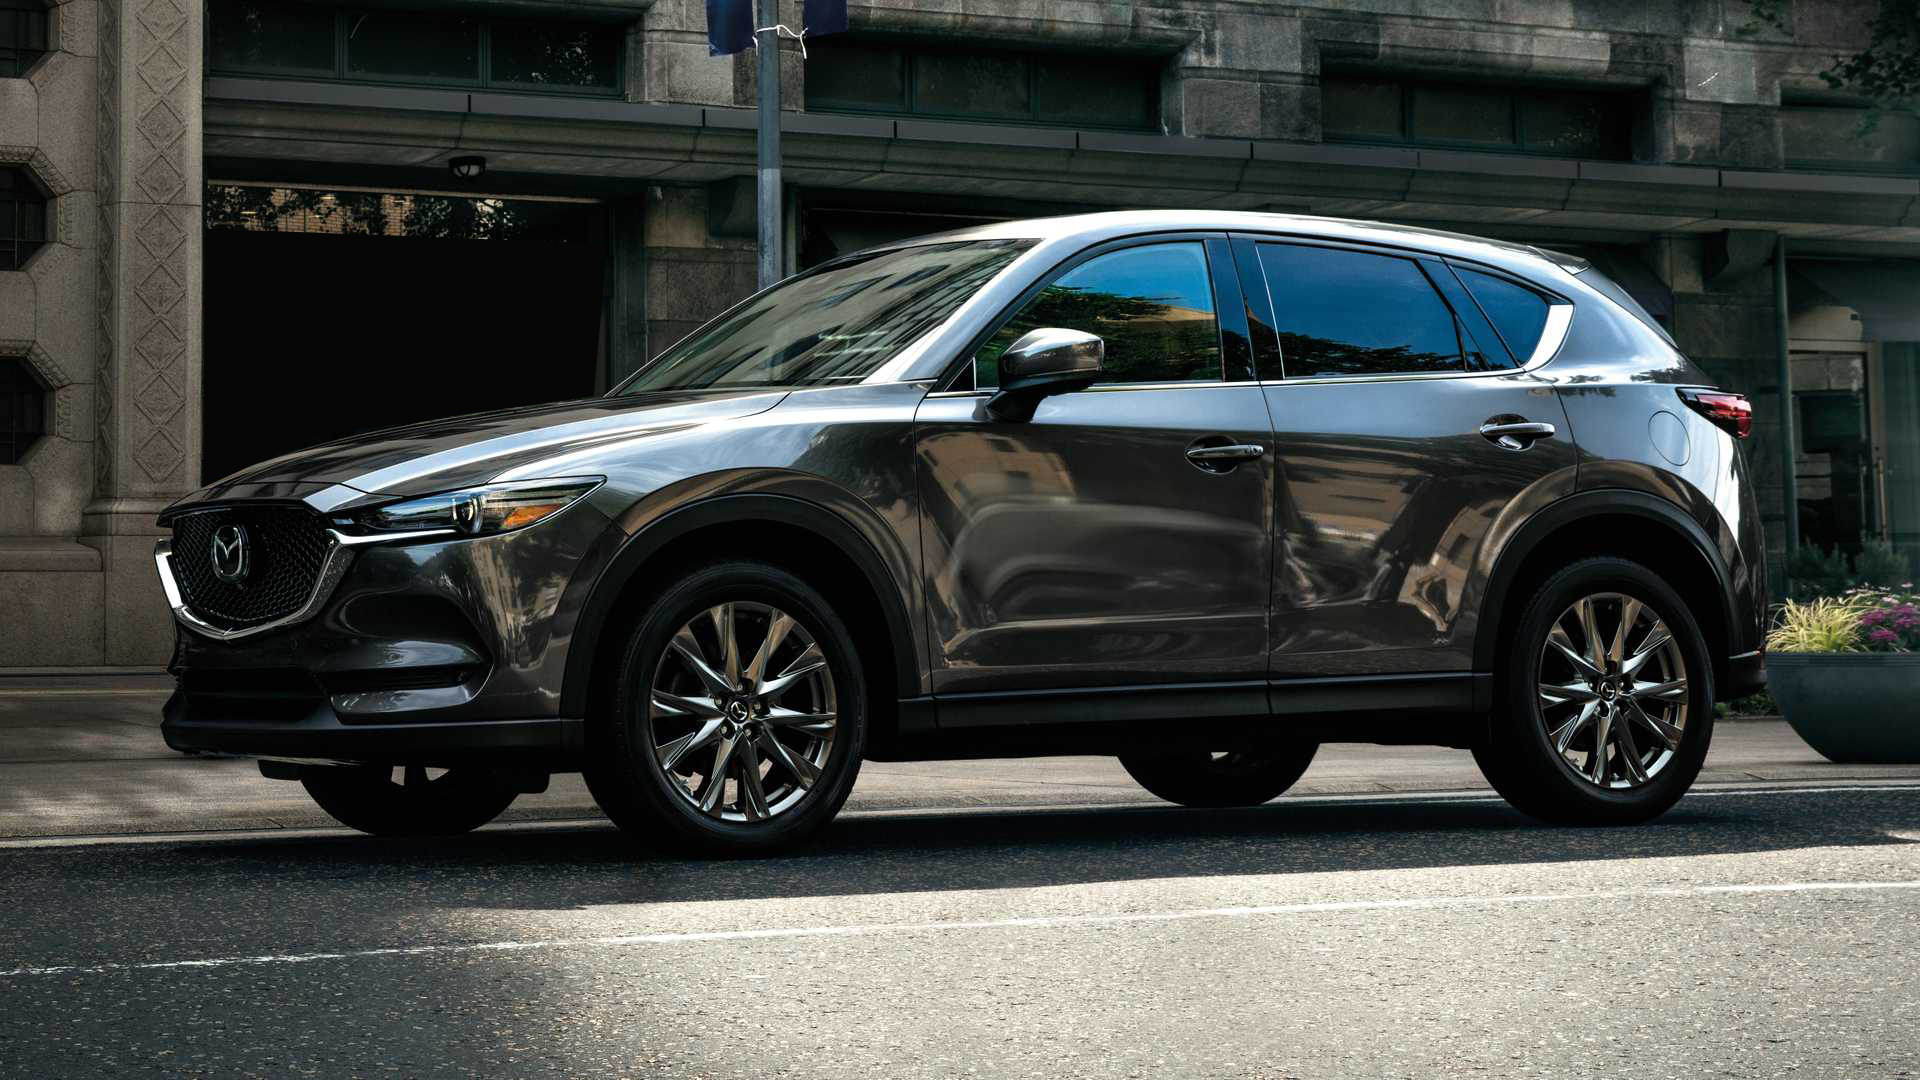 2022 Mazda Cx 5 Reviews Touring Awd Mpg